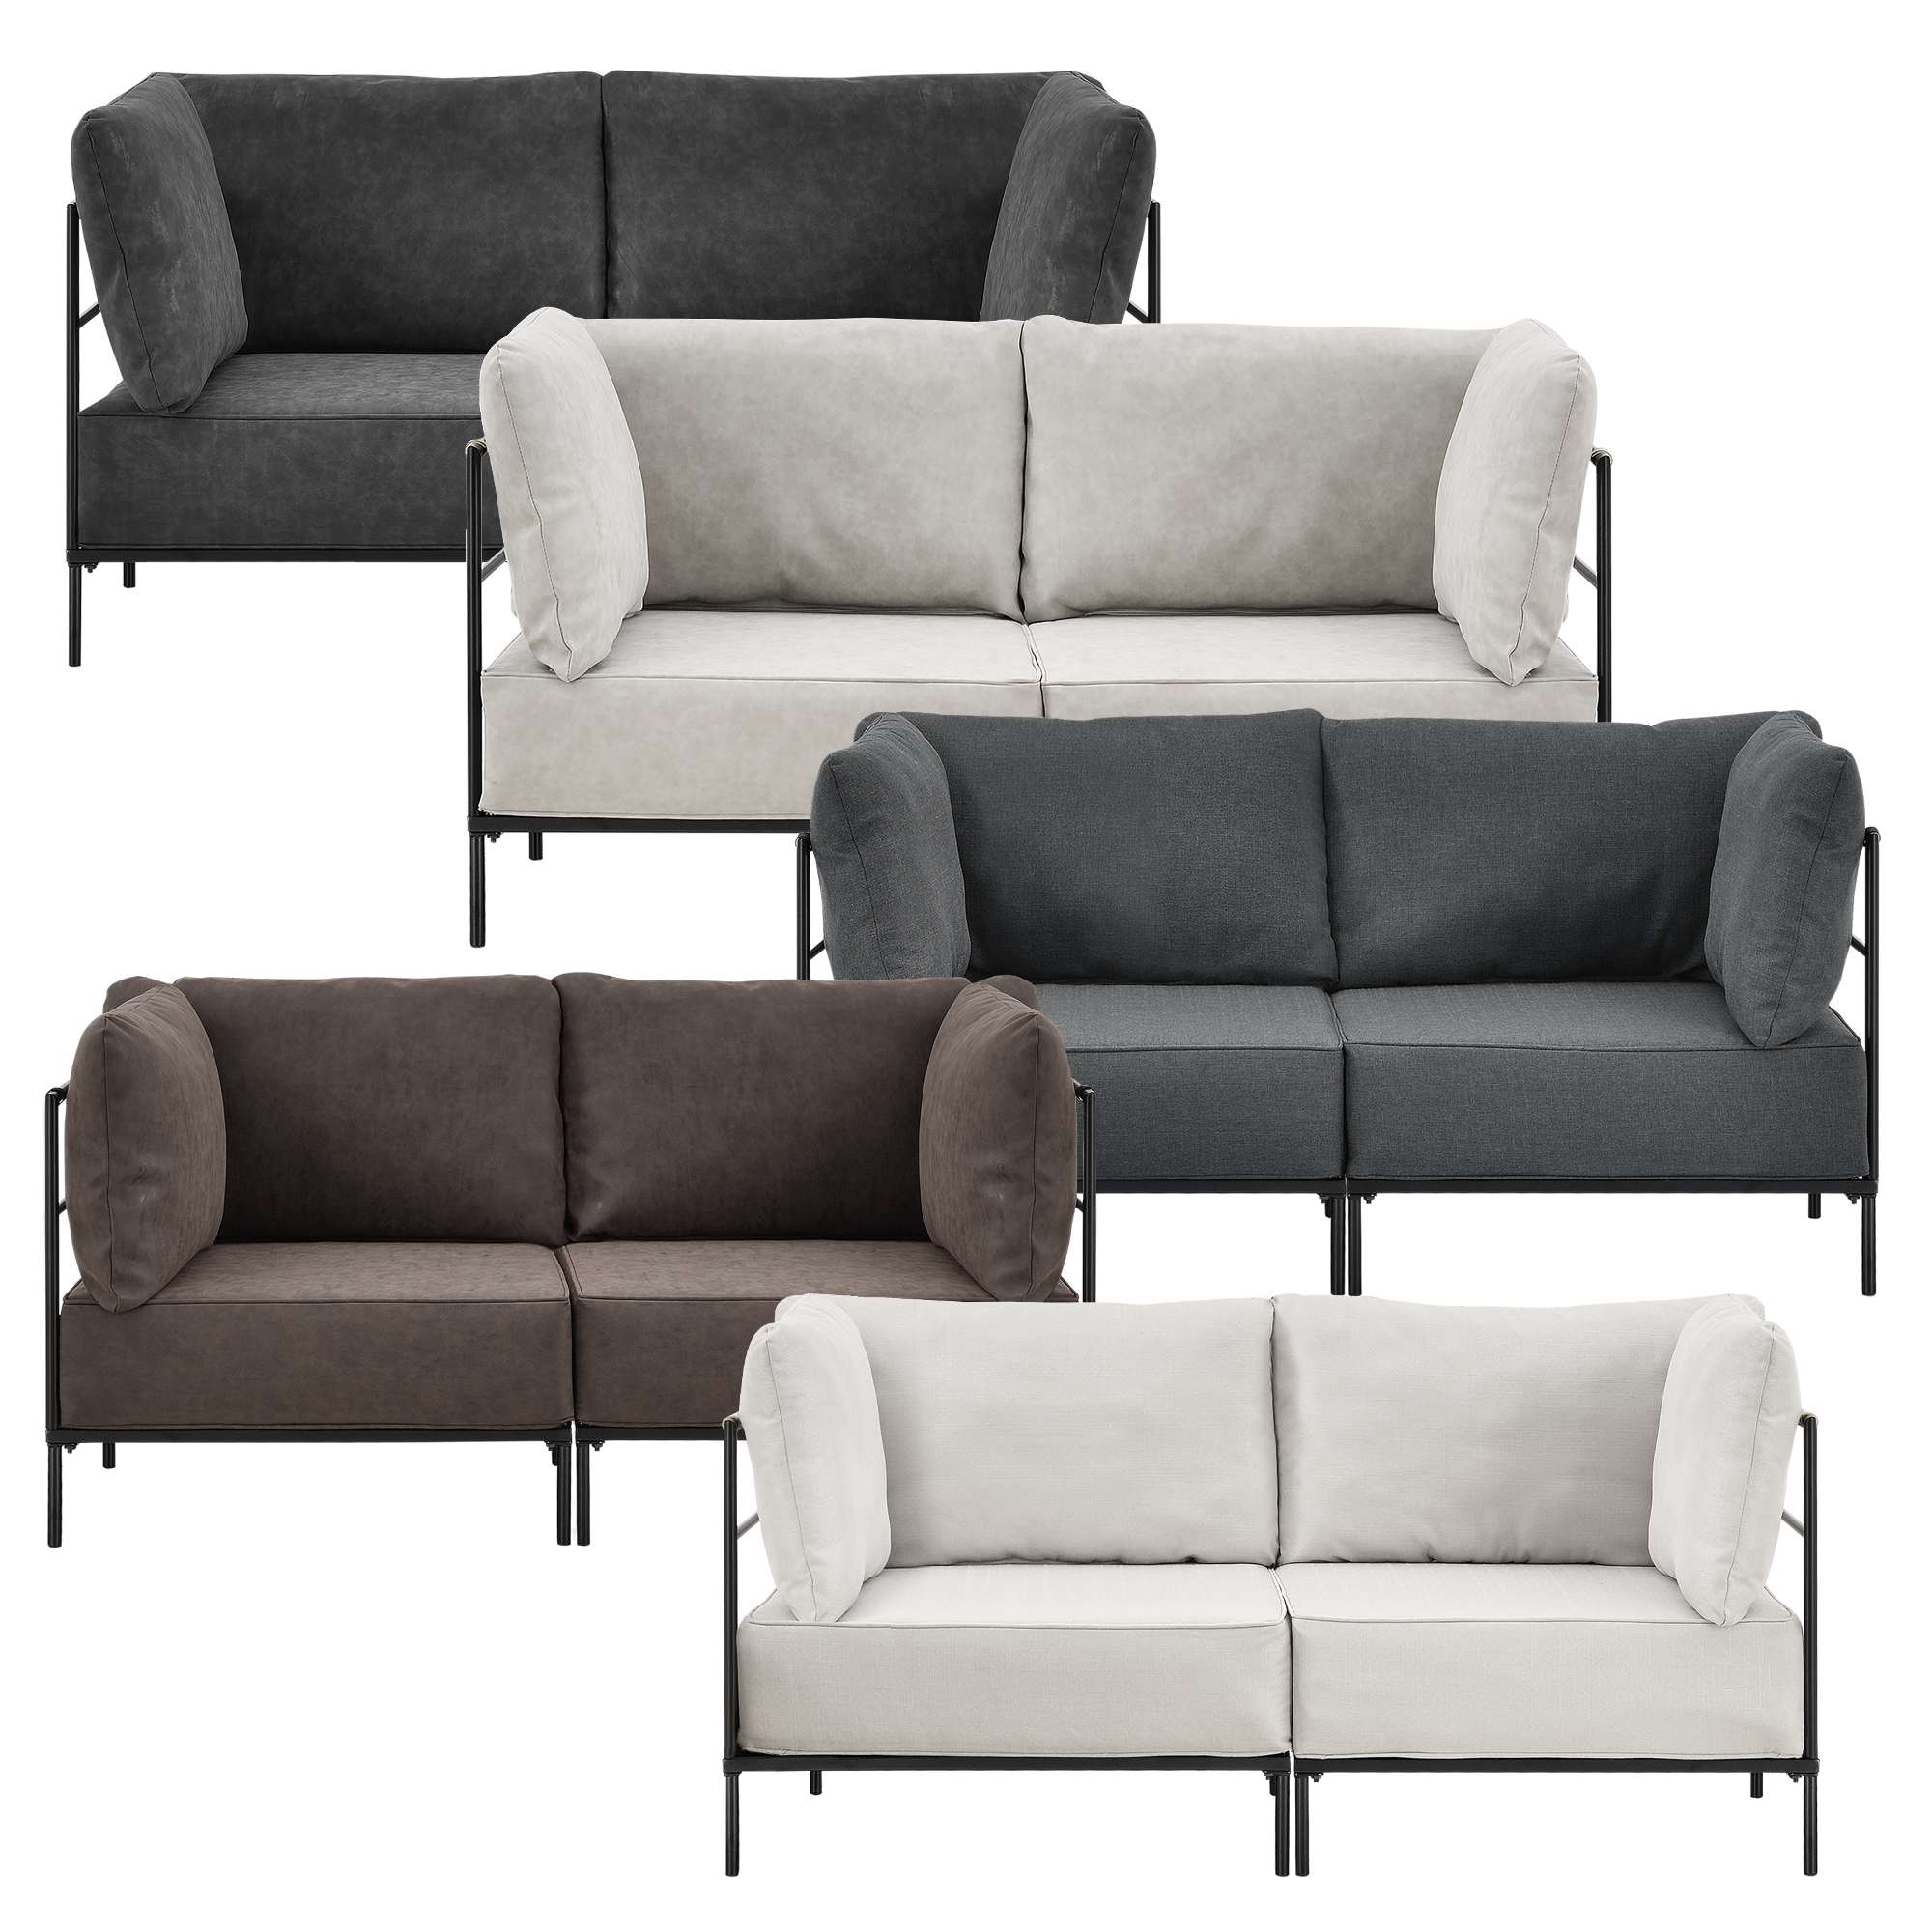 Sofa couch chair sofa interior design set imitation leather ebay Polsterkissen sofa